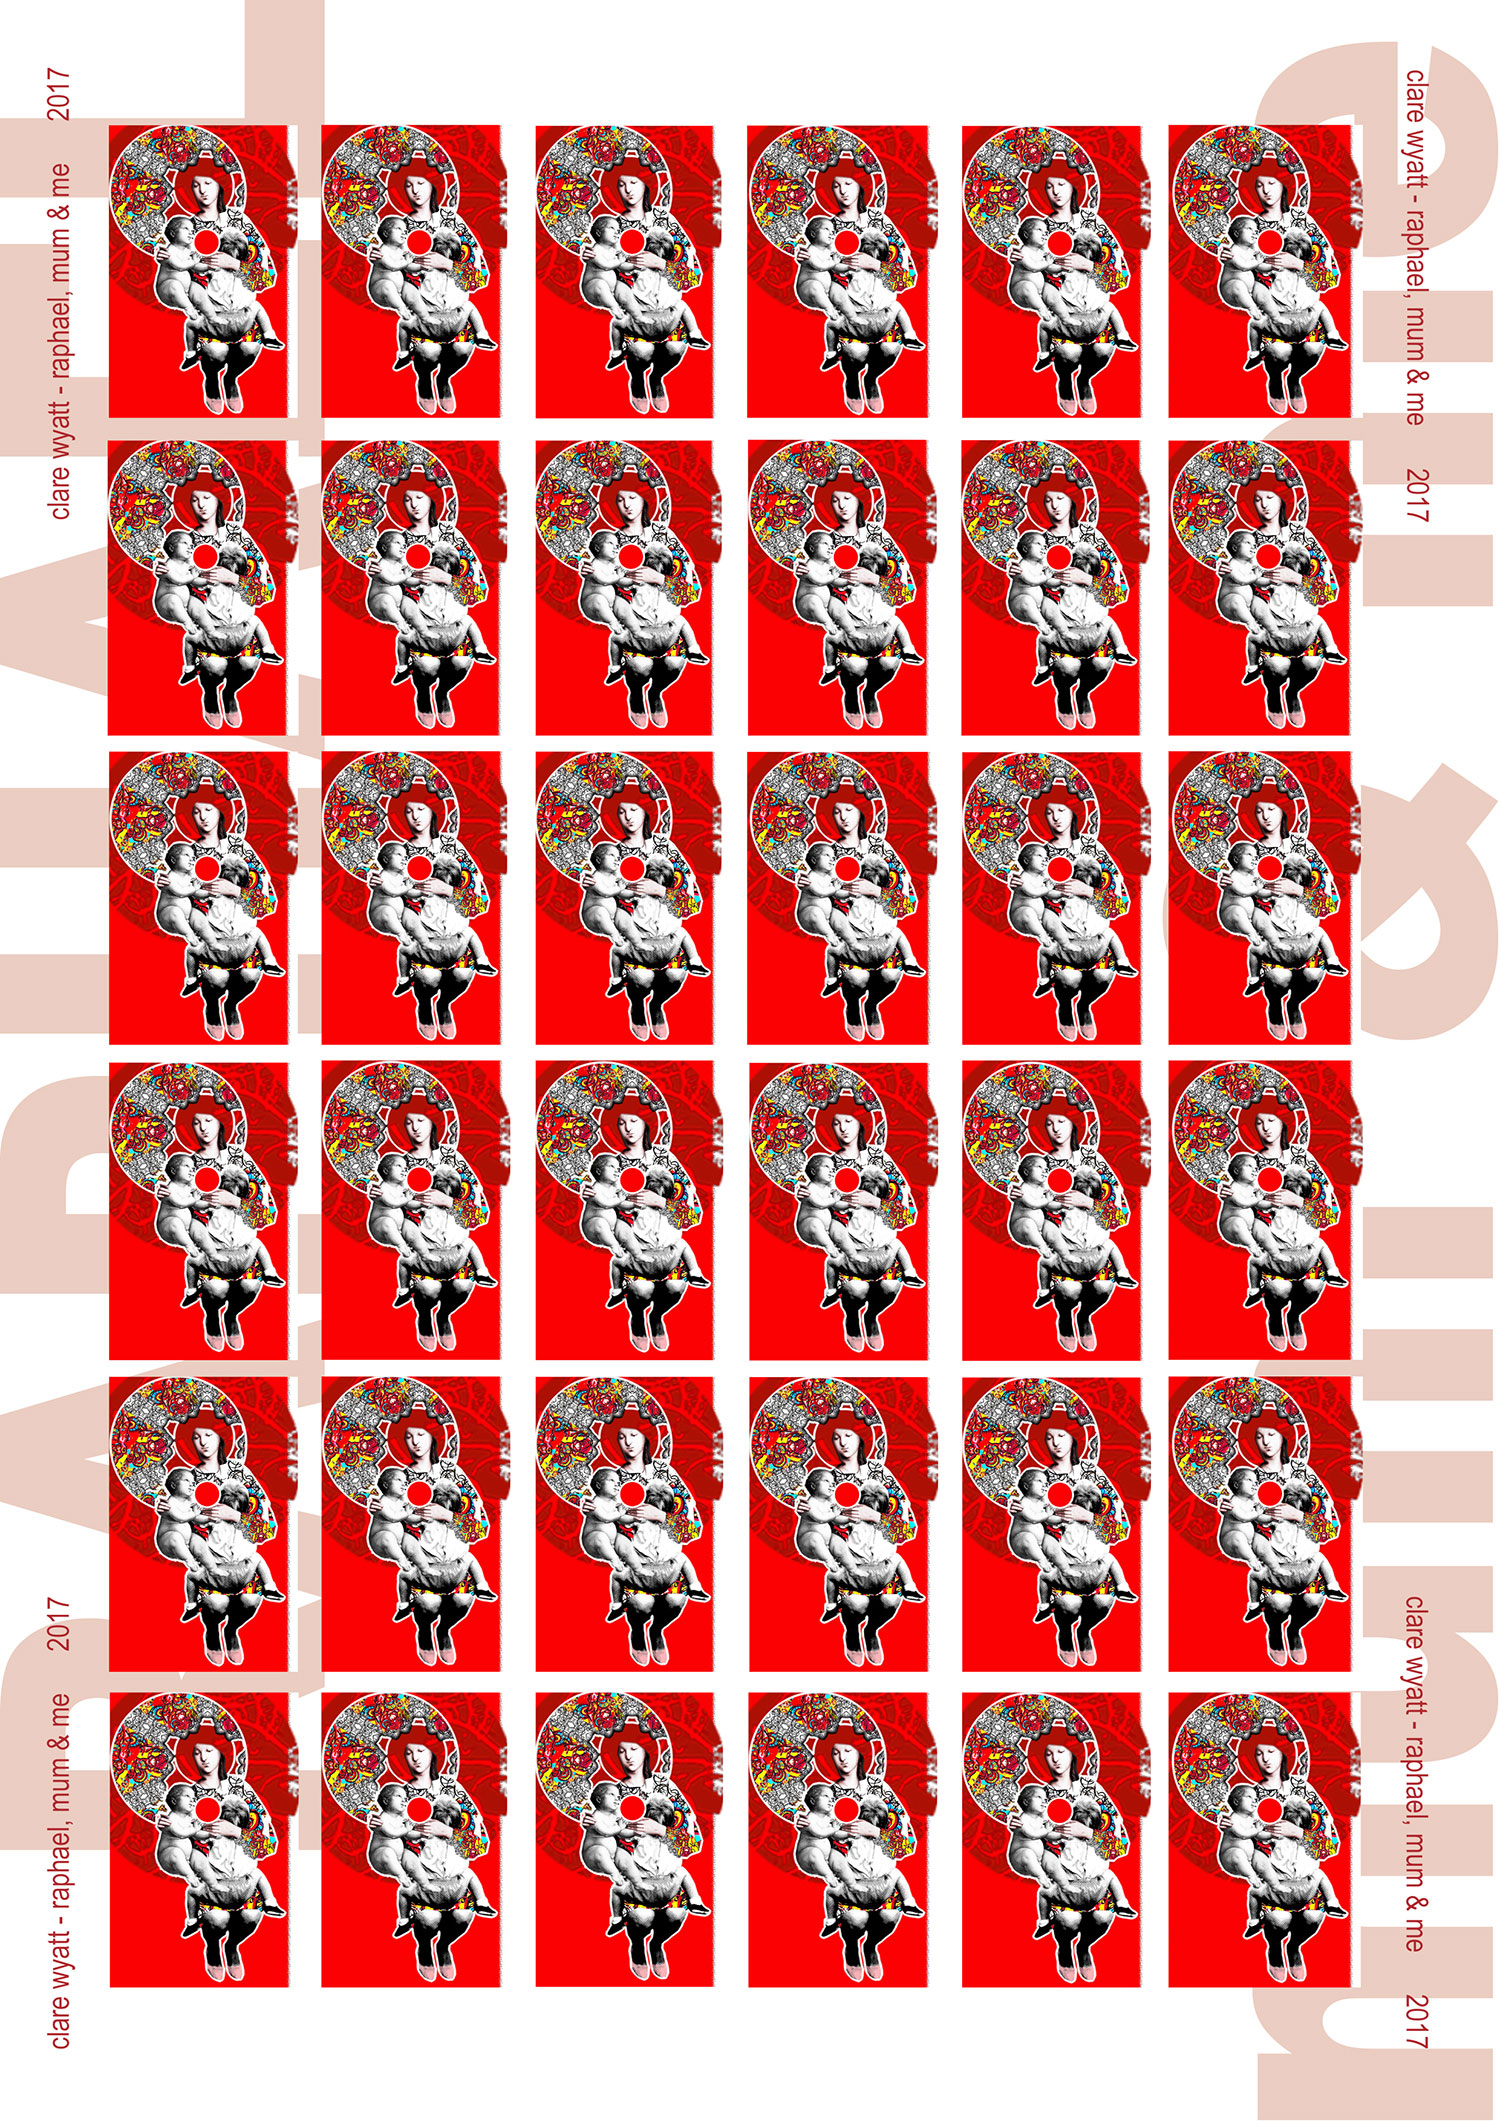 raphael, madonna and me stamps